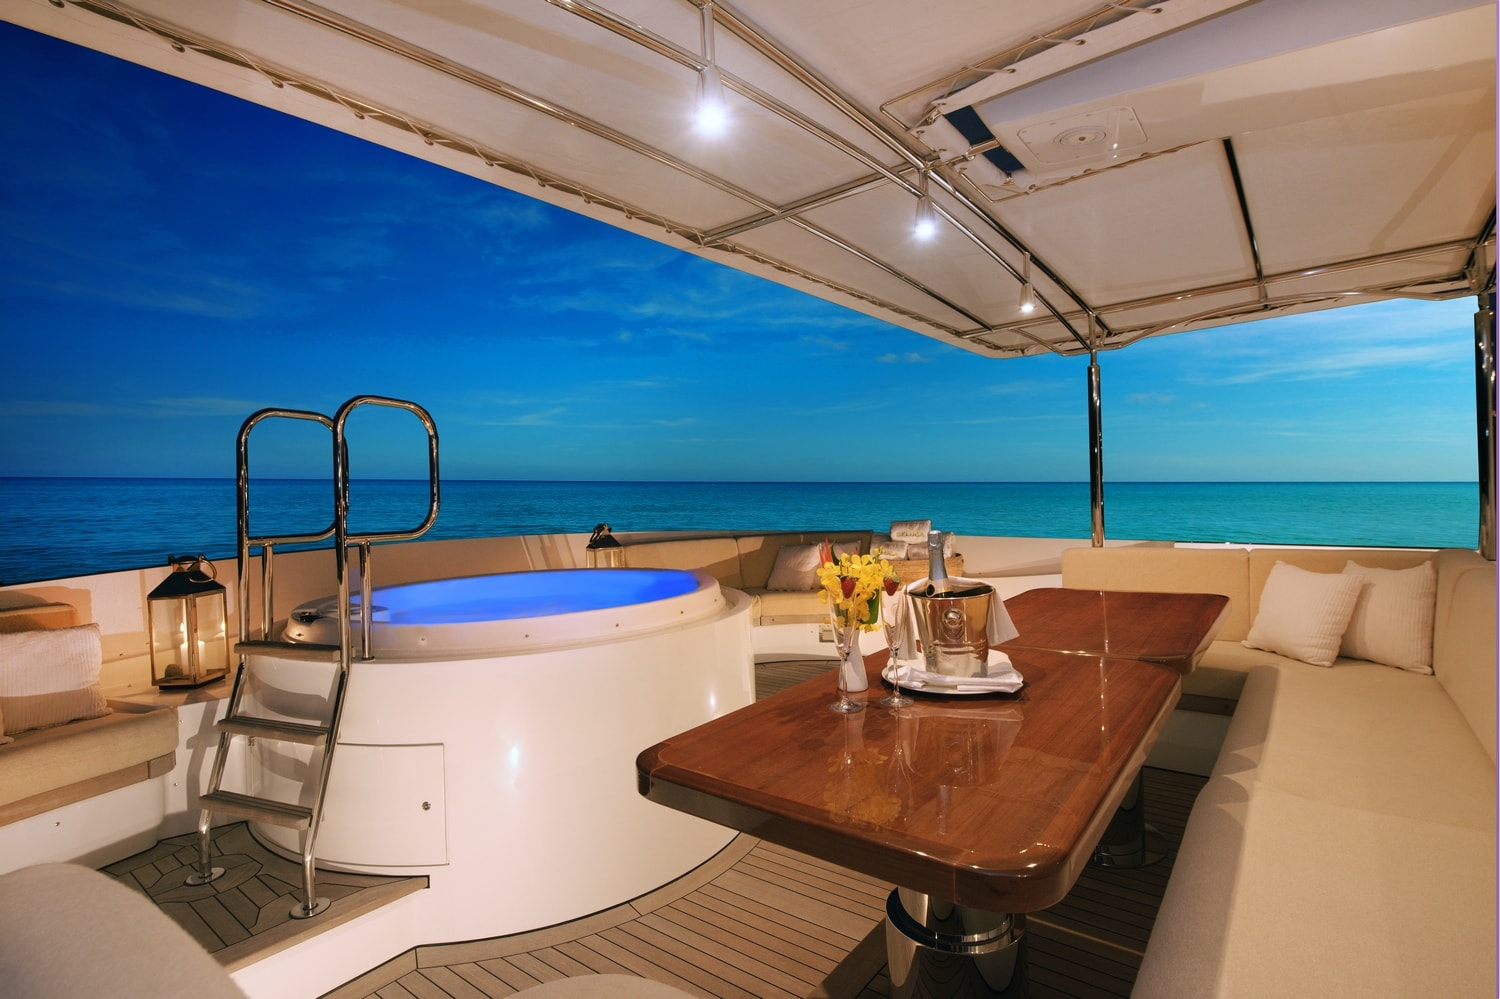 Expansive sundeck with 4-person jacuzzi